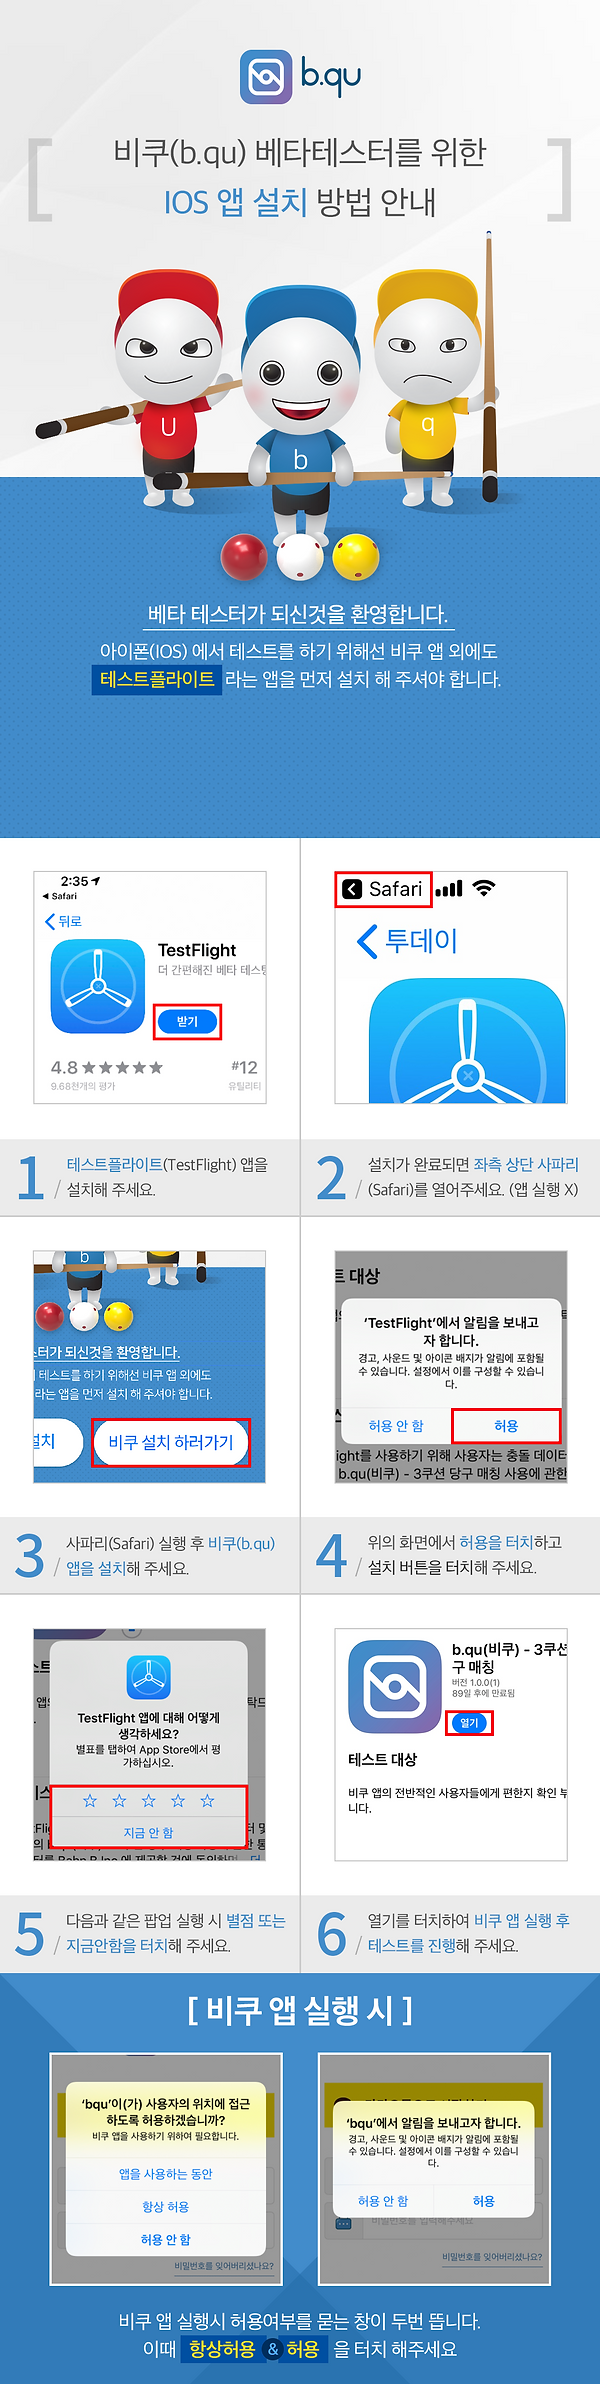 iosguide.png